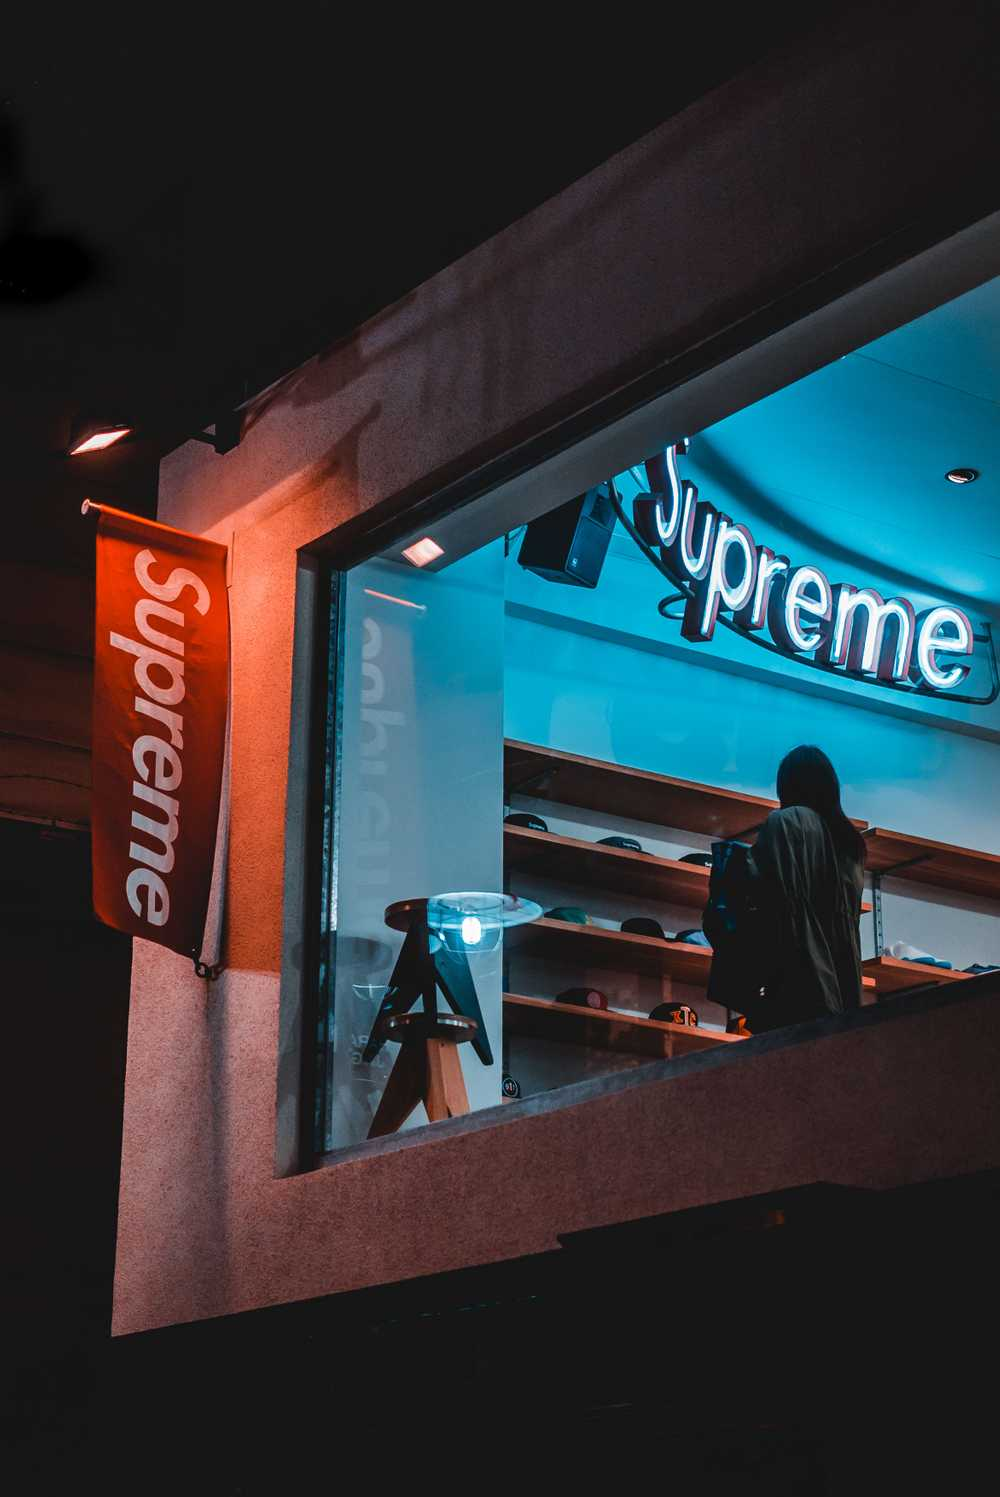 red and white Supreme signage